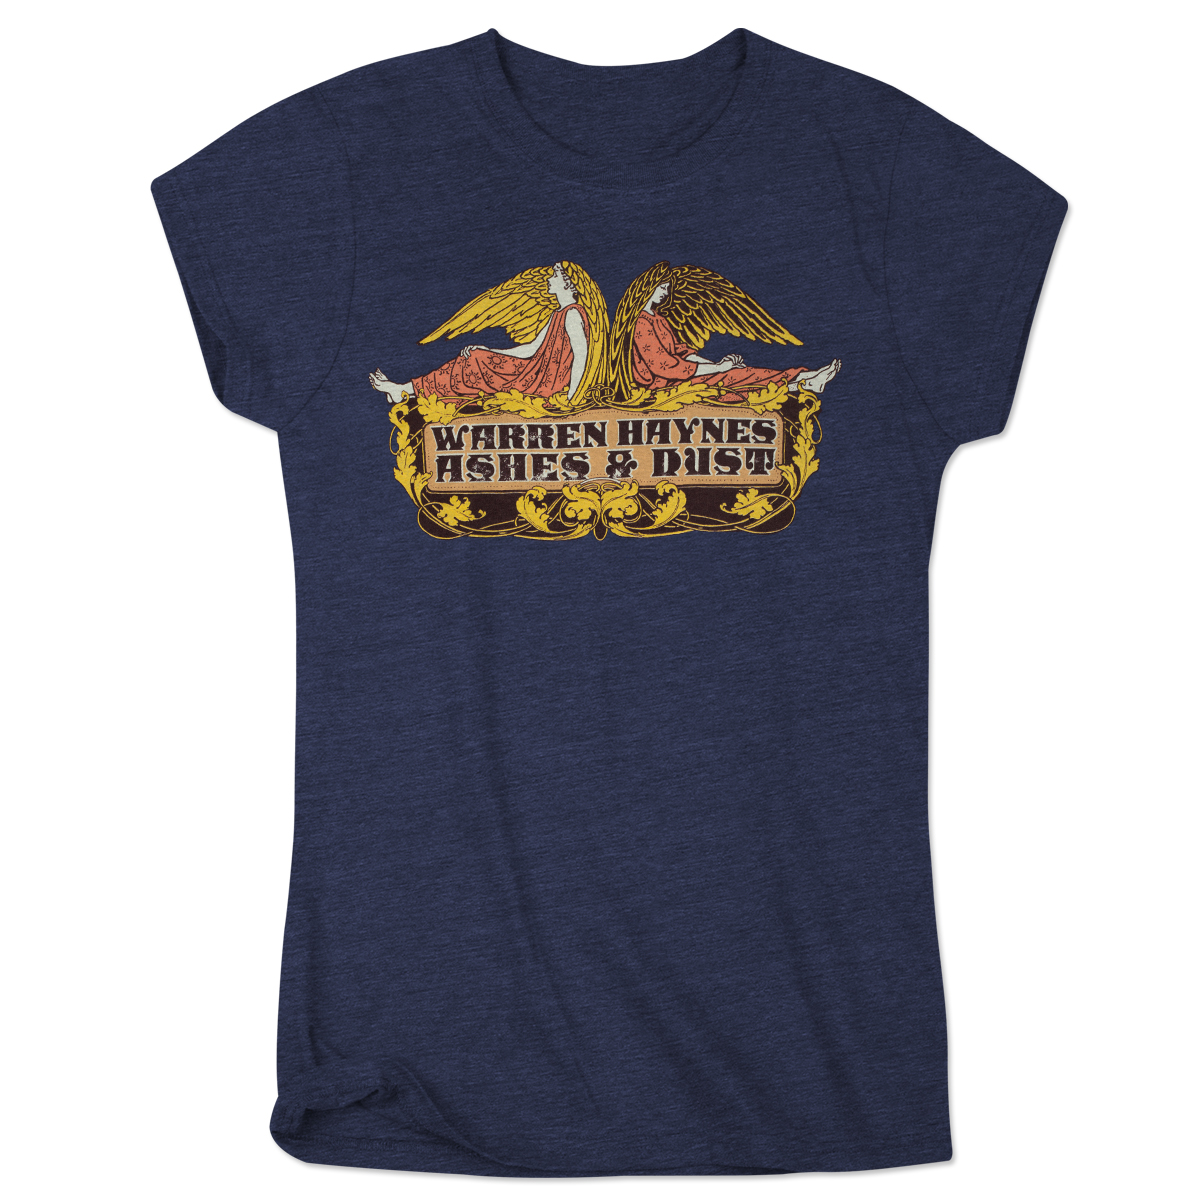 Warren Haynes Wings Logo with Ashes & Dust Back Print